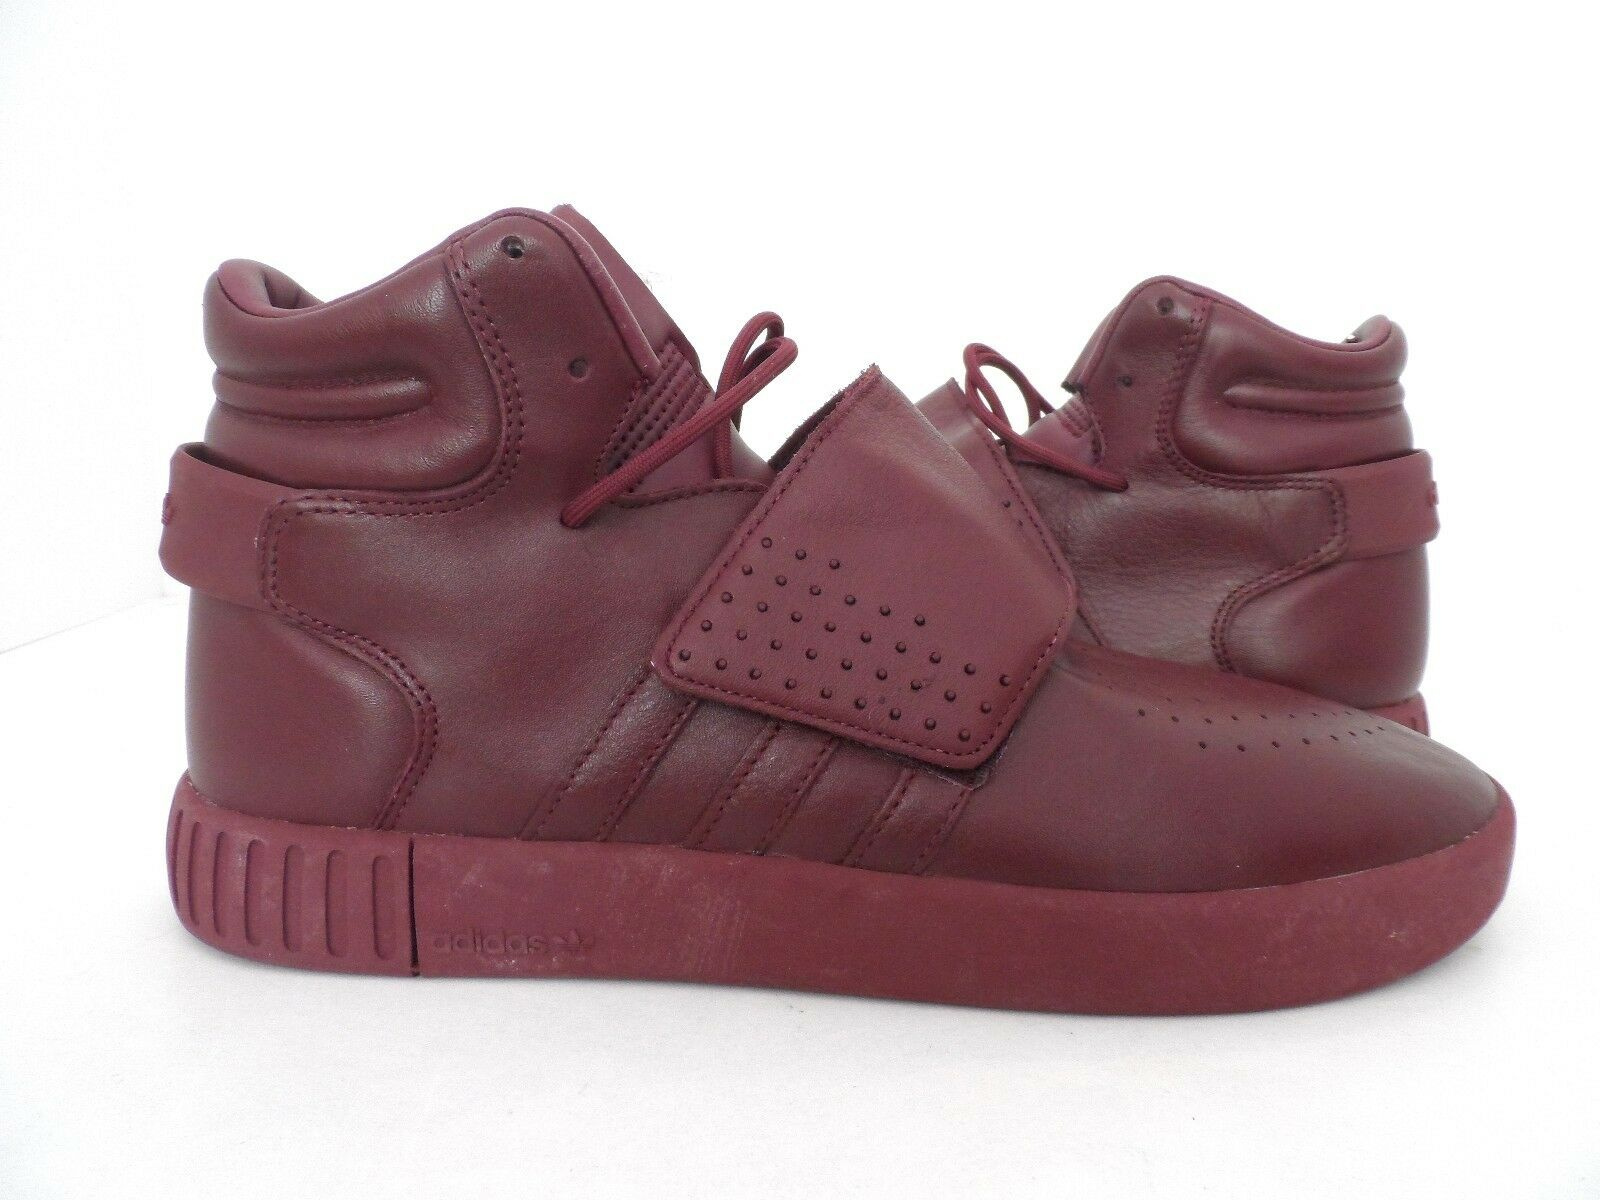 premium selection 01527 2a179 ... low price adidas originals mens tubular size invader strap shoes maroon  size tubular 10.5 4fcb66 86293